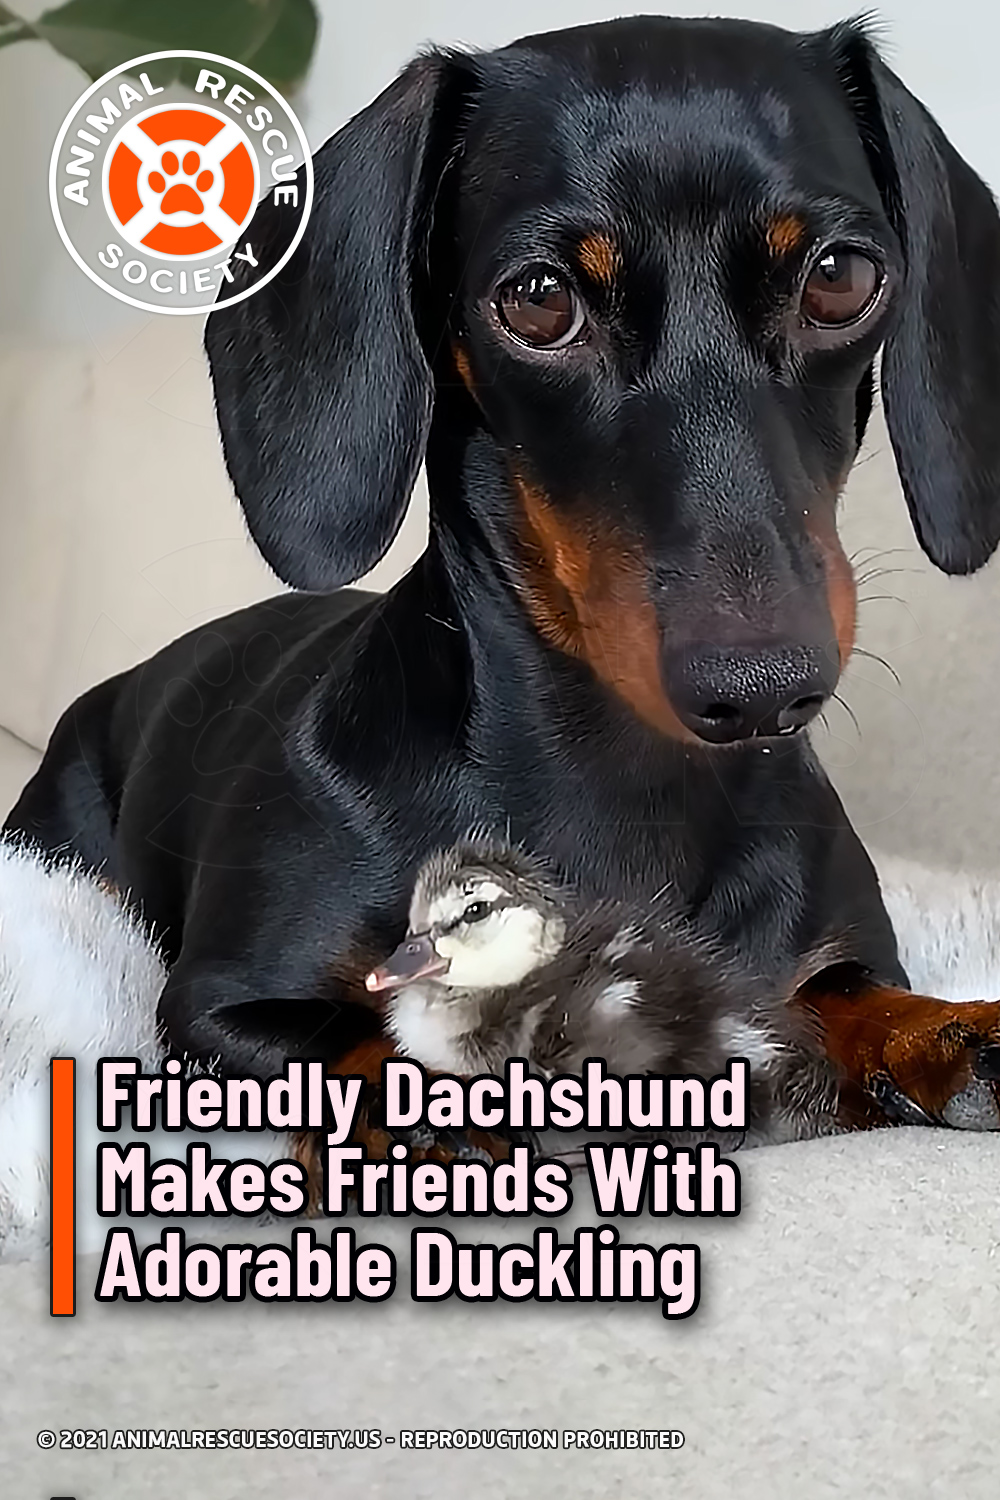 Friendly Dachshund Makes Friends With Adorable Duckling